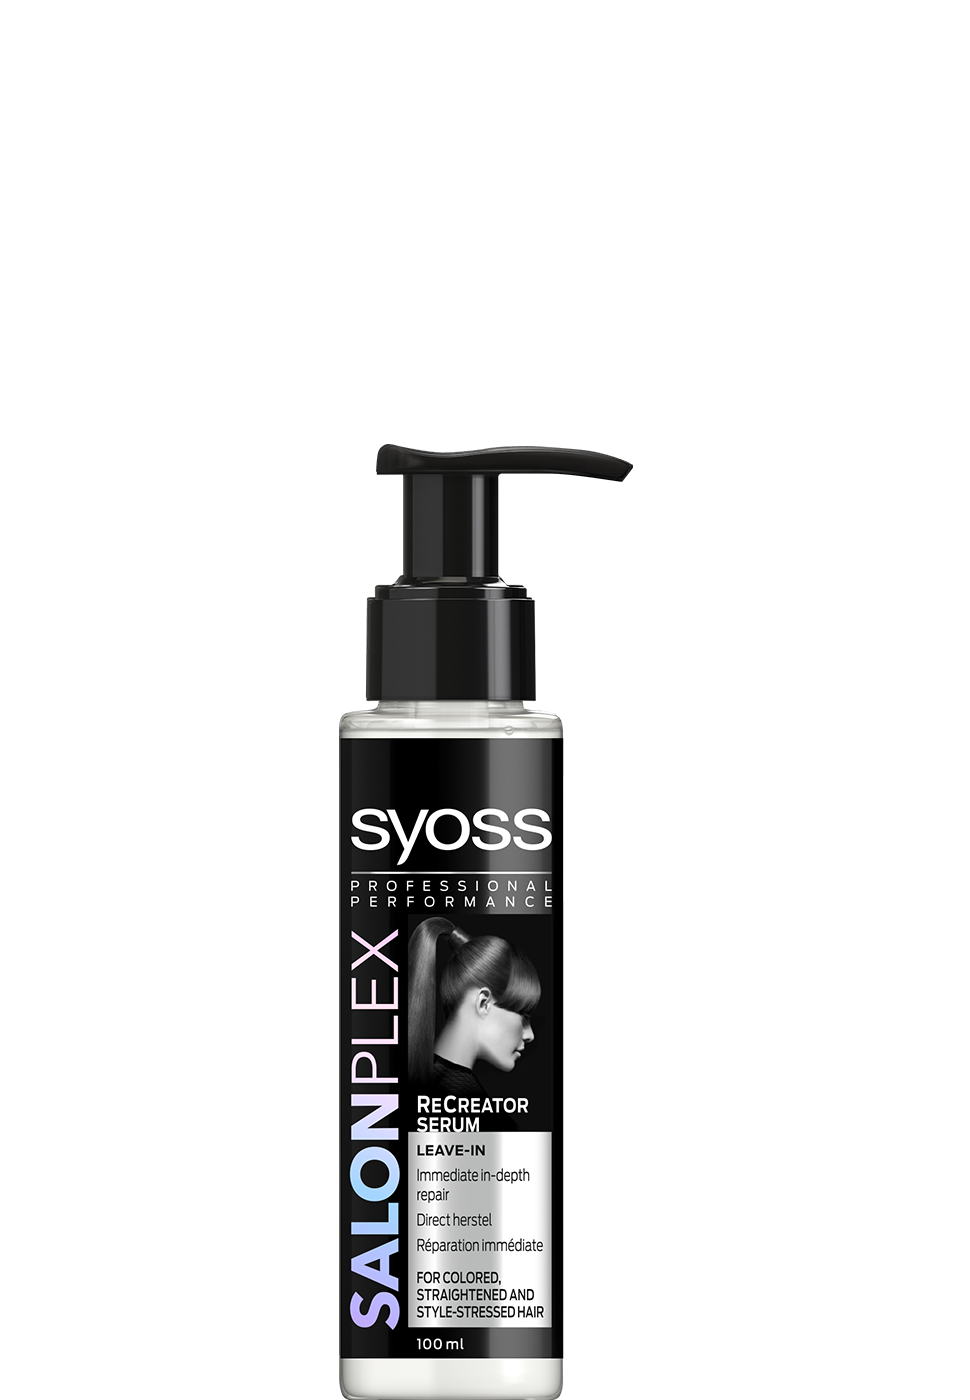 SE_SYOSS_SALONPLEX-SERUM_970x1400